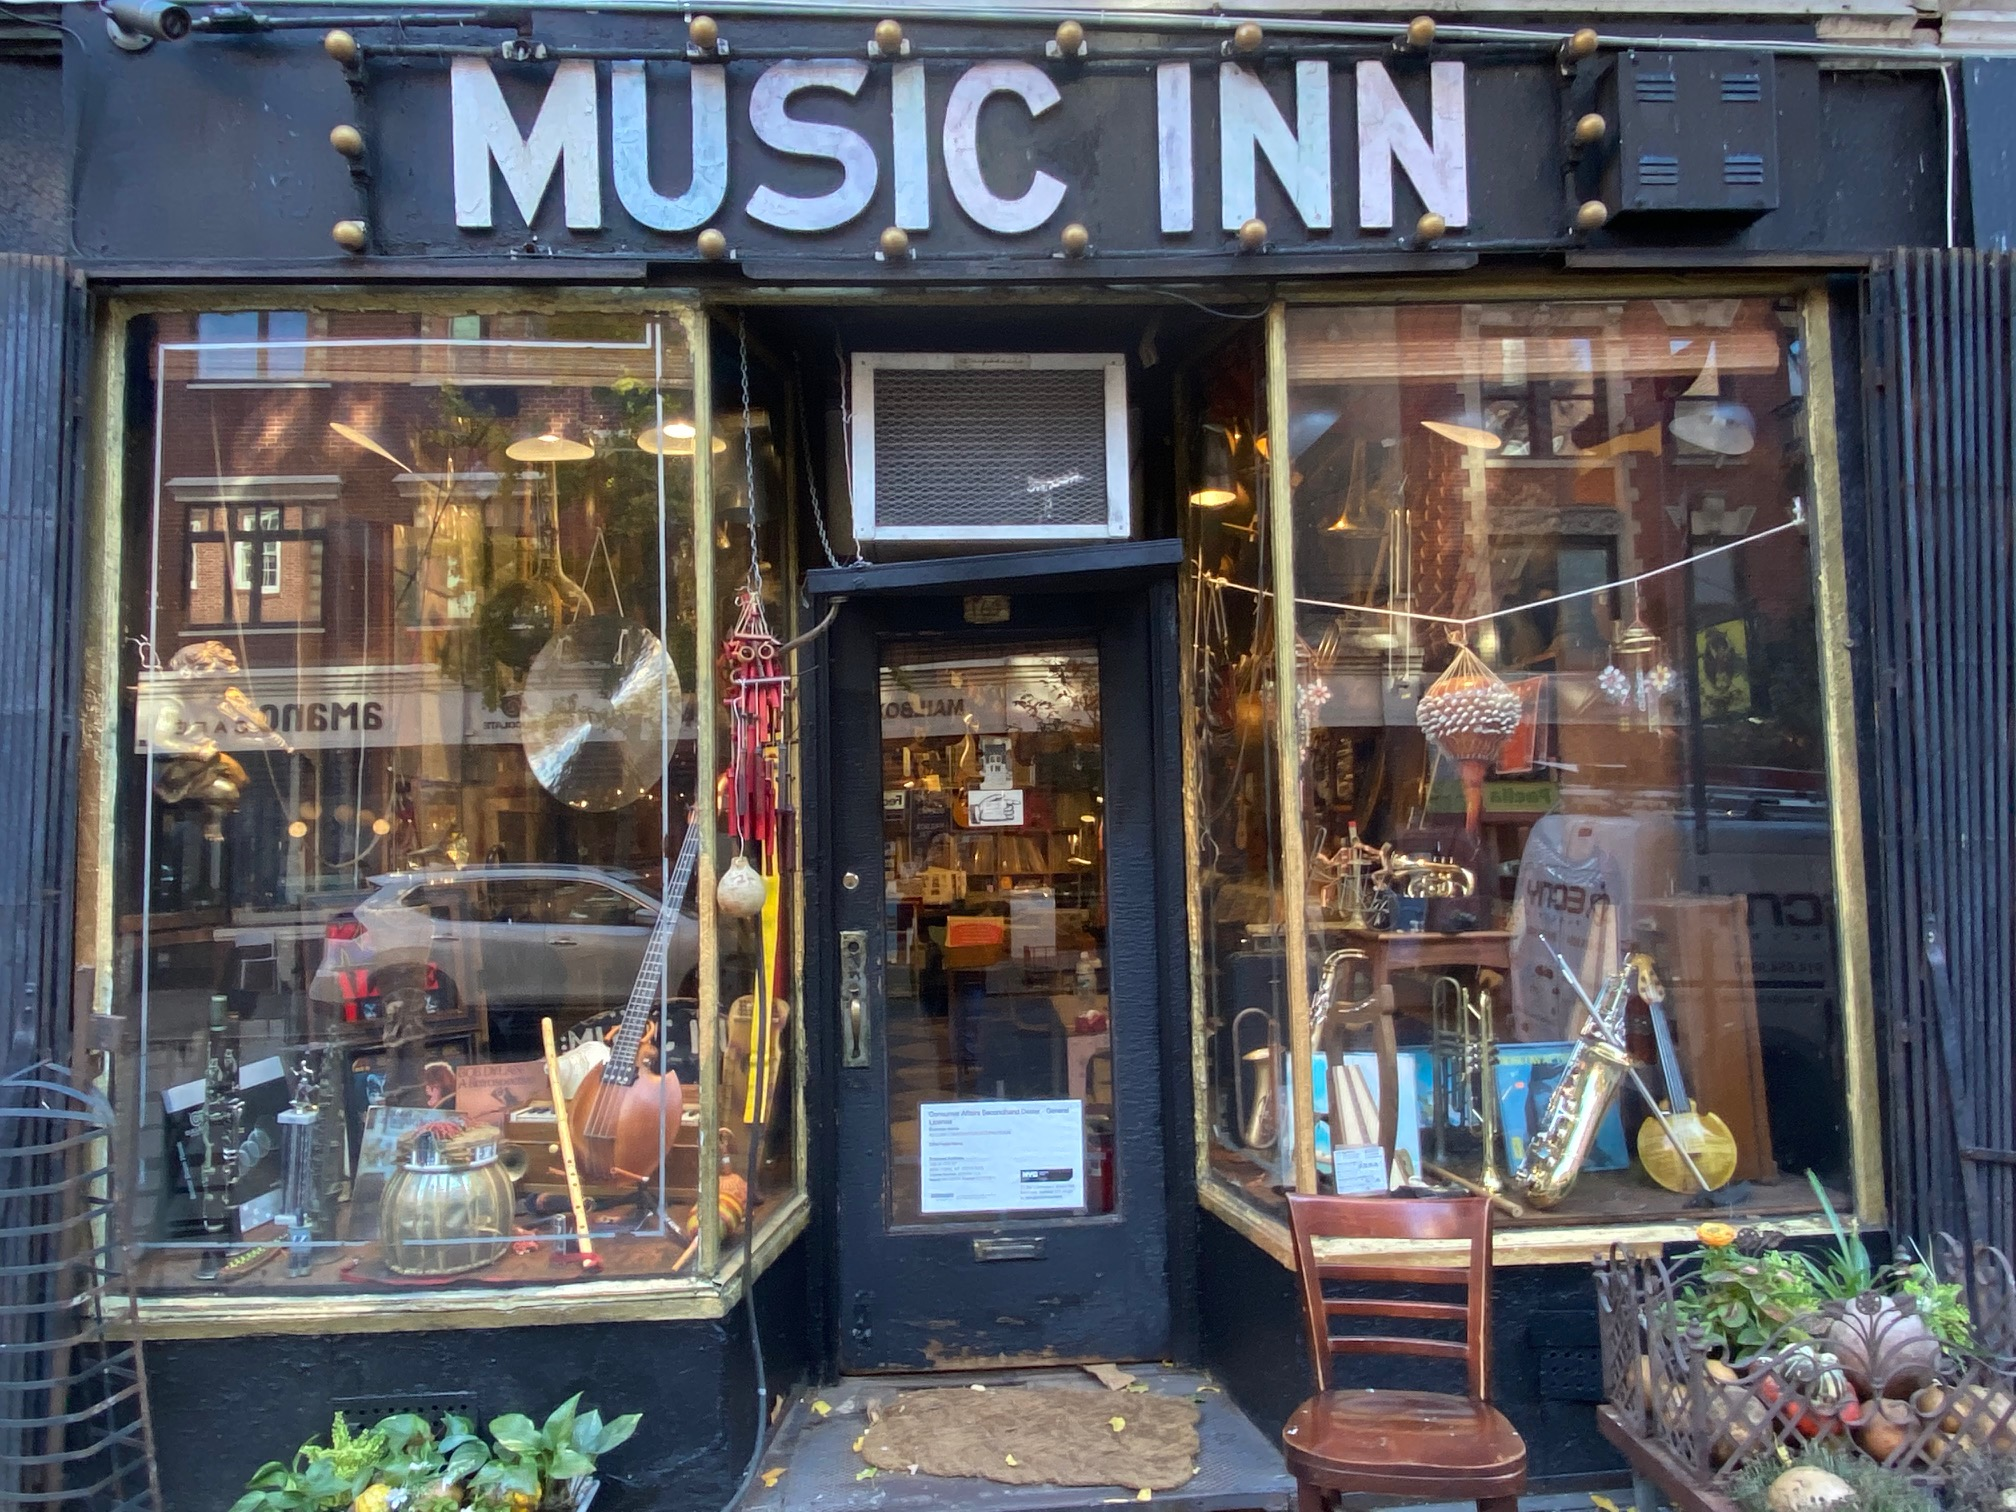 On Location Tours: Mrs. Maisel's Marvelous Tour of New York Music Inn